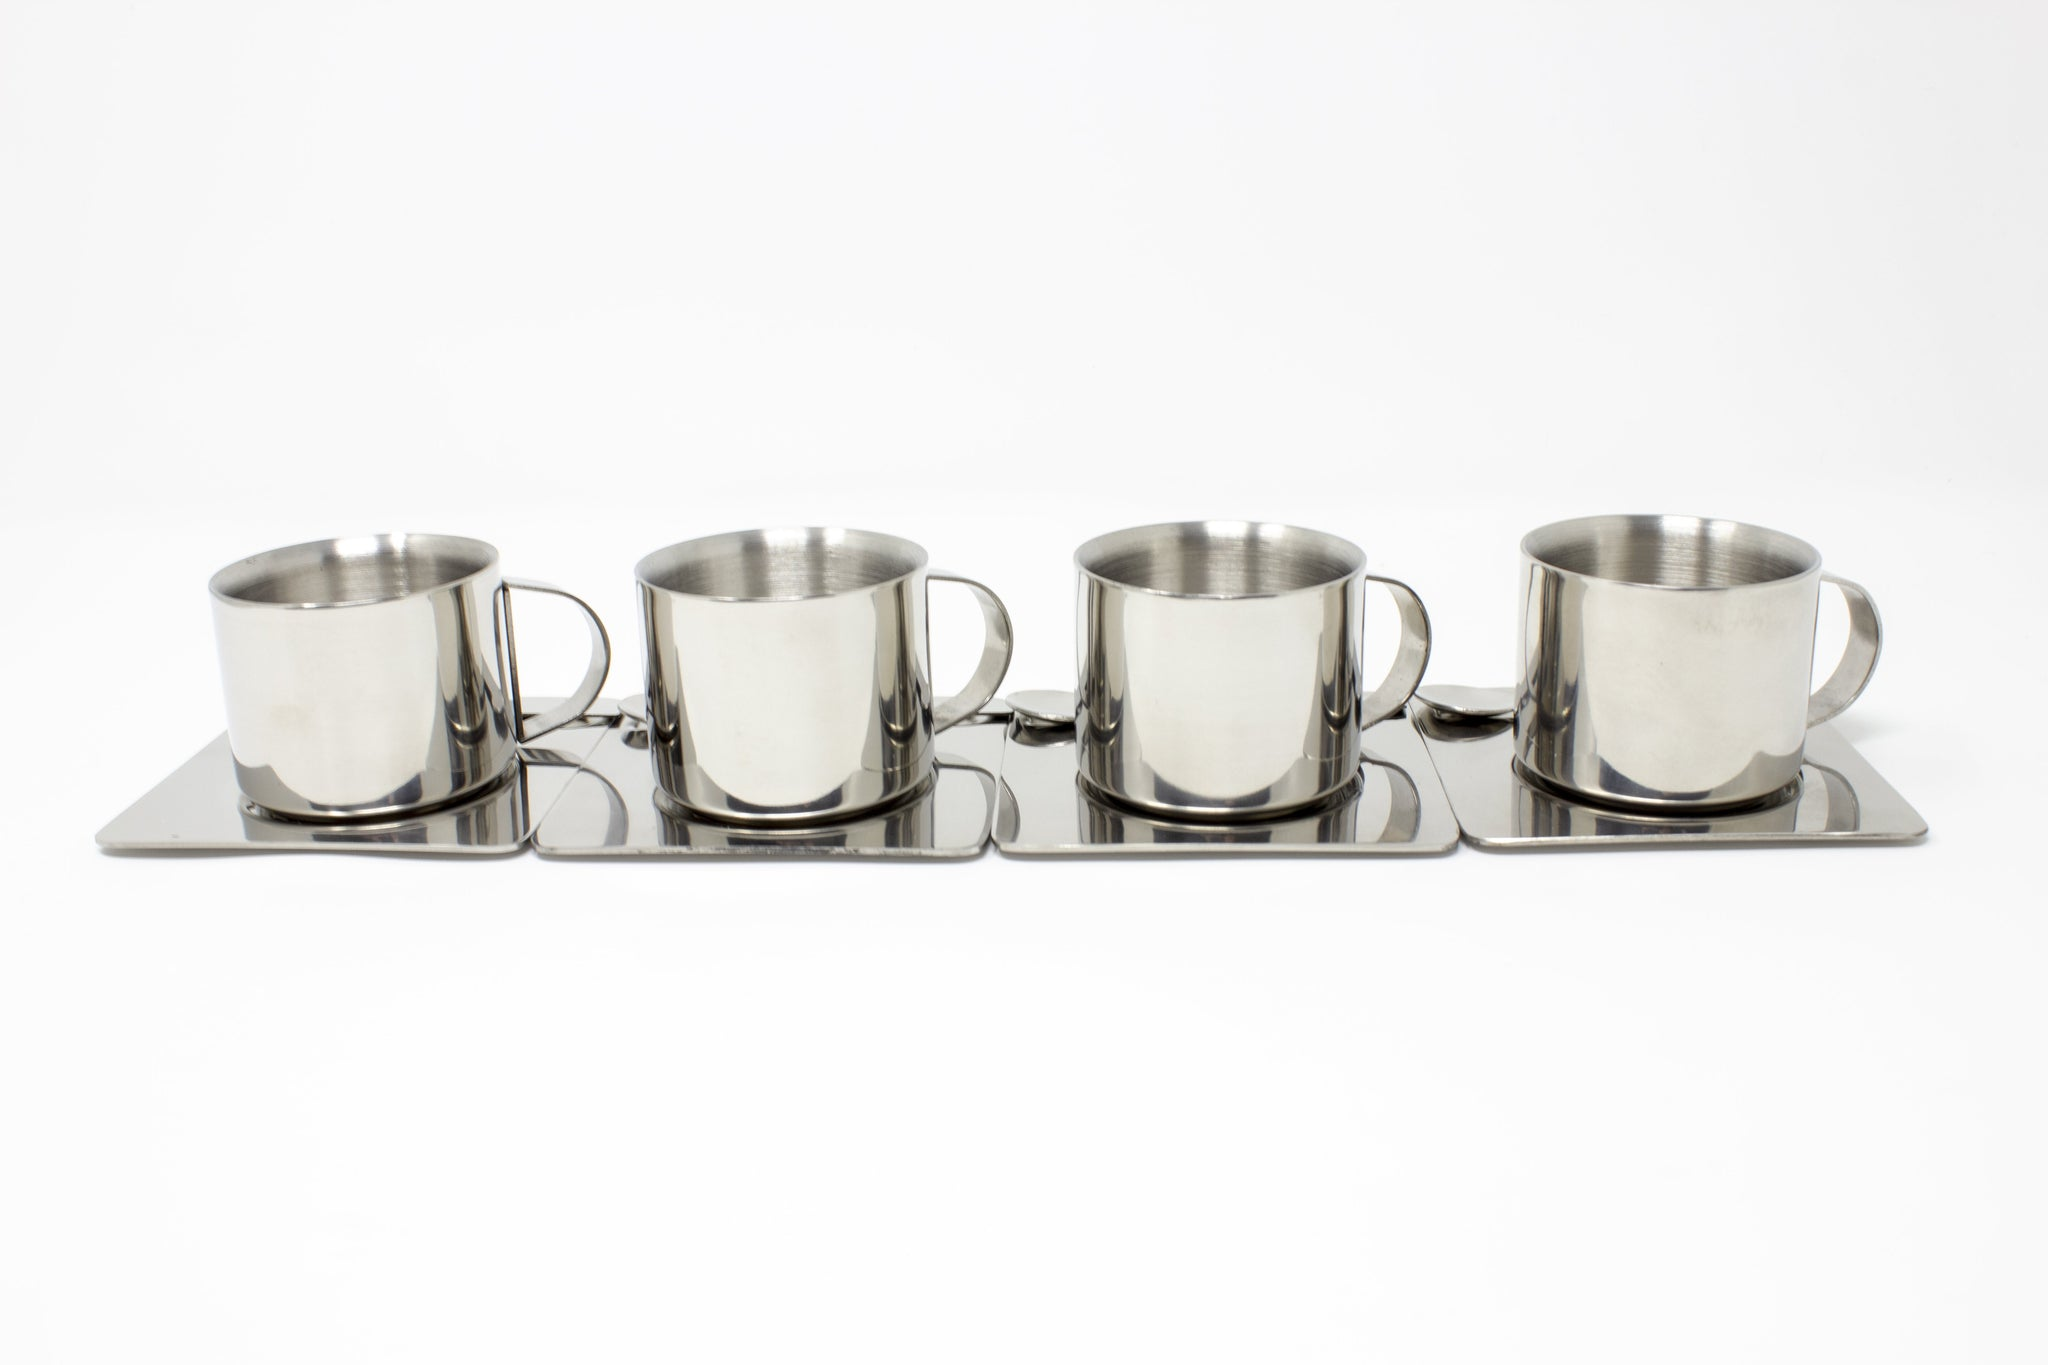 Espresso Cups with Saucers & Spoons - Set of 4